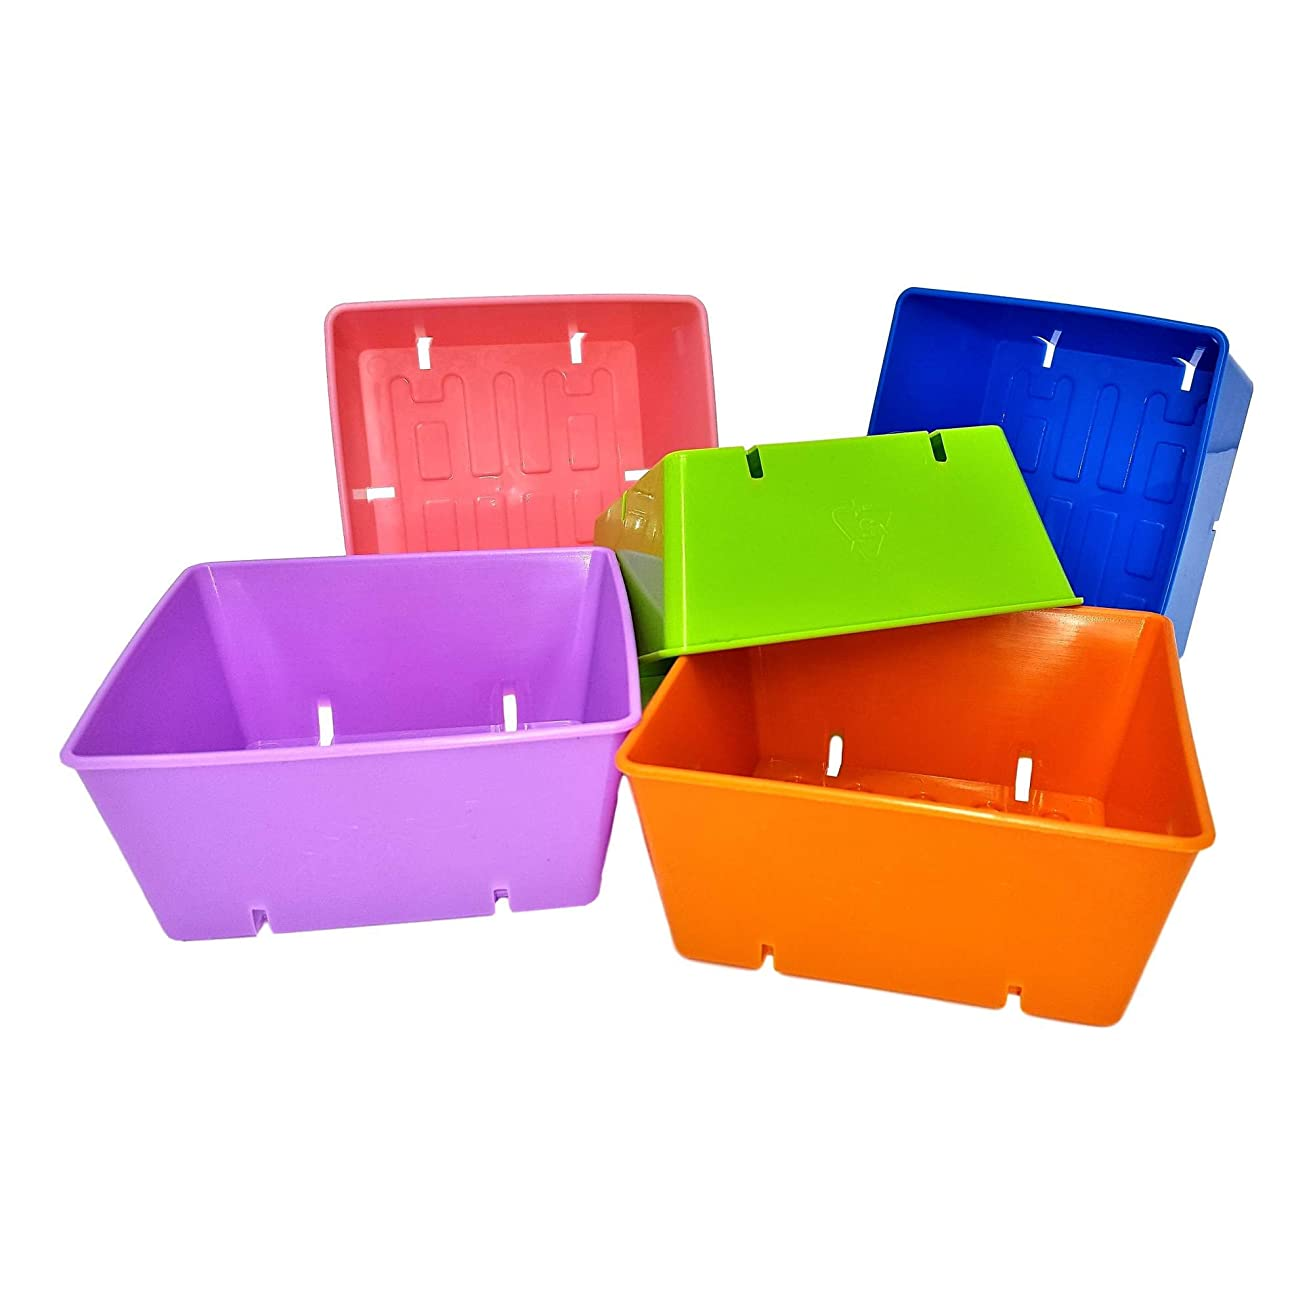 5x5 Seed Tray Multi Color - 40 Pack - Extra Strength 5 x 5 Inserts Grow Microgreens, Wheatgrass Seeds, Fodder 1020 System 801 Trays